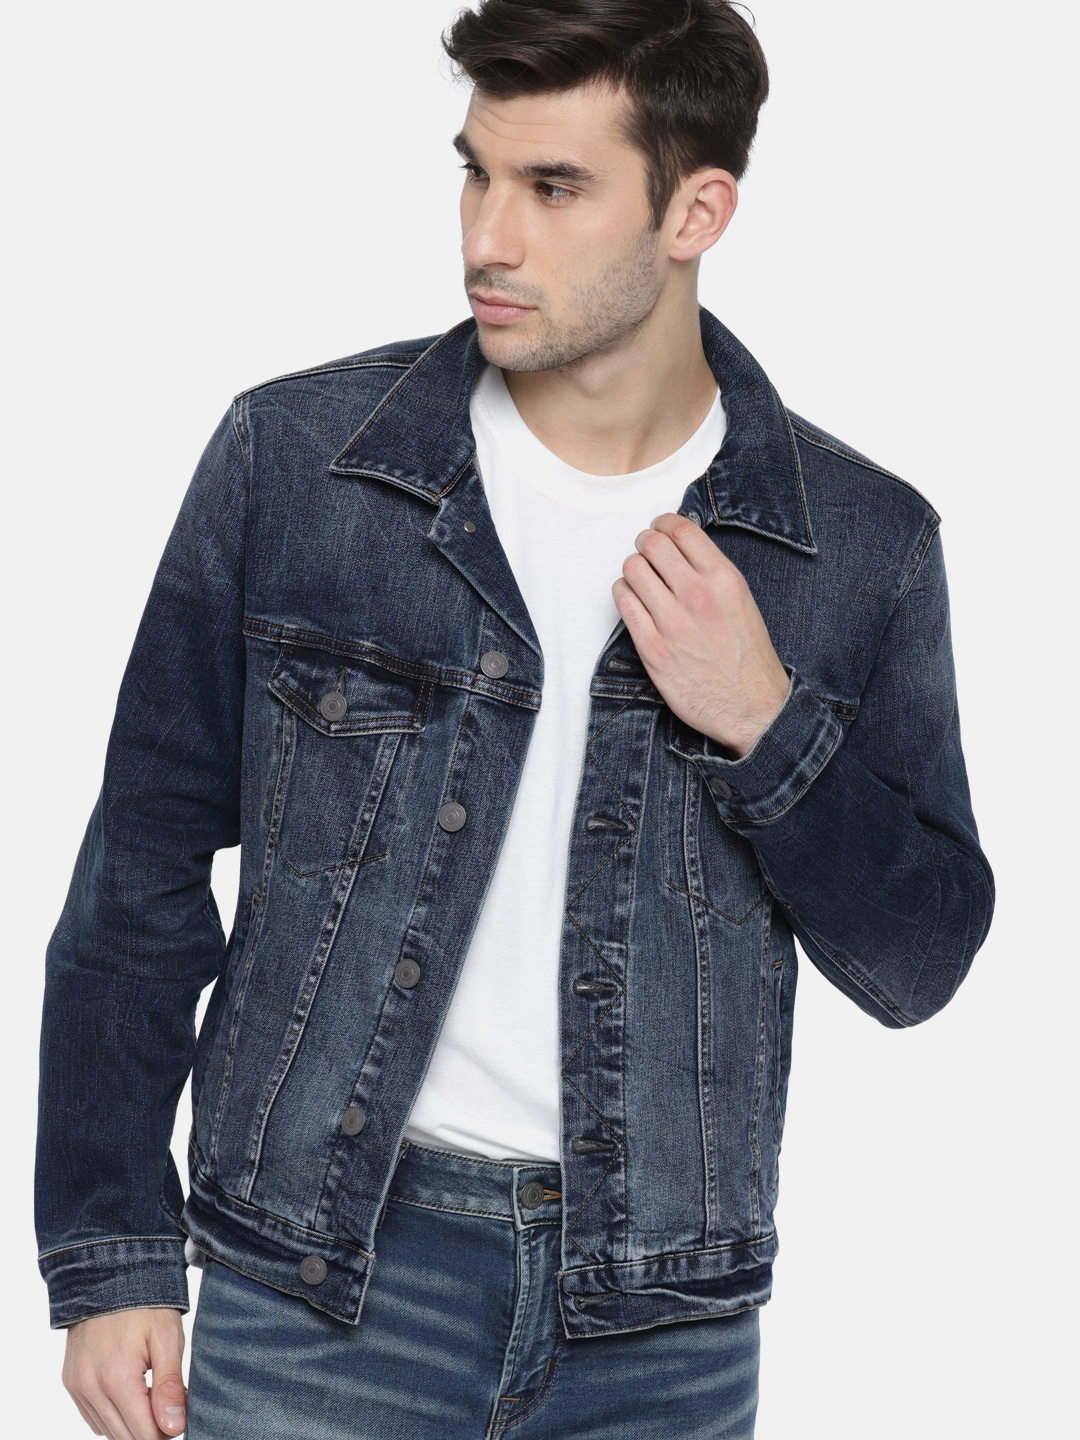 071feb563ee Buy AMERICAN EAGLE OUTFITTERS Men Blue Solid Denim Jacket - Jackets ...